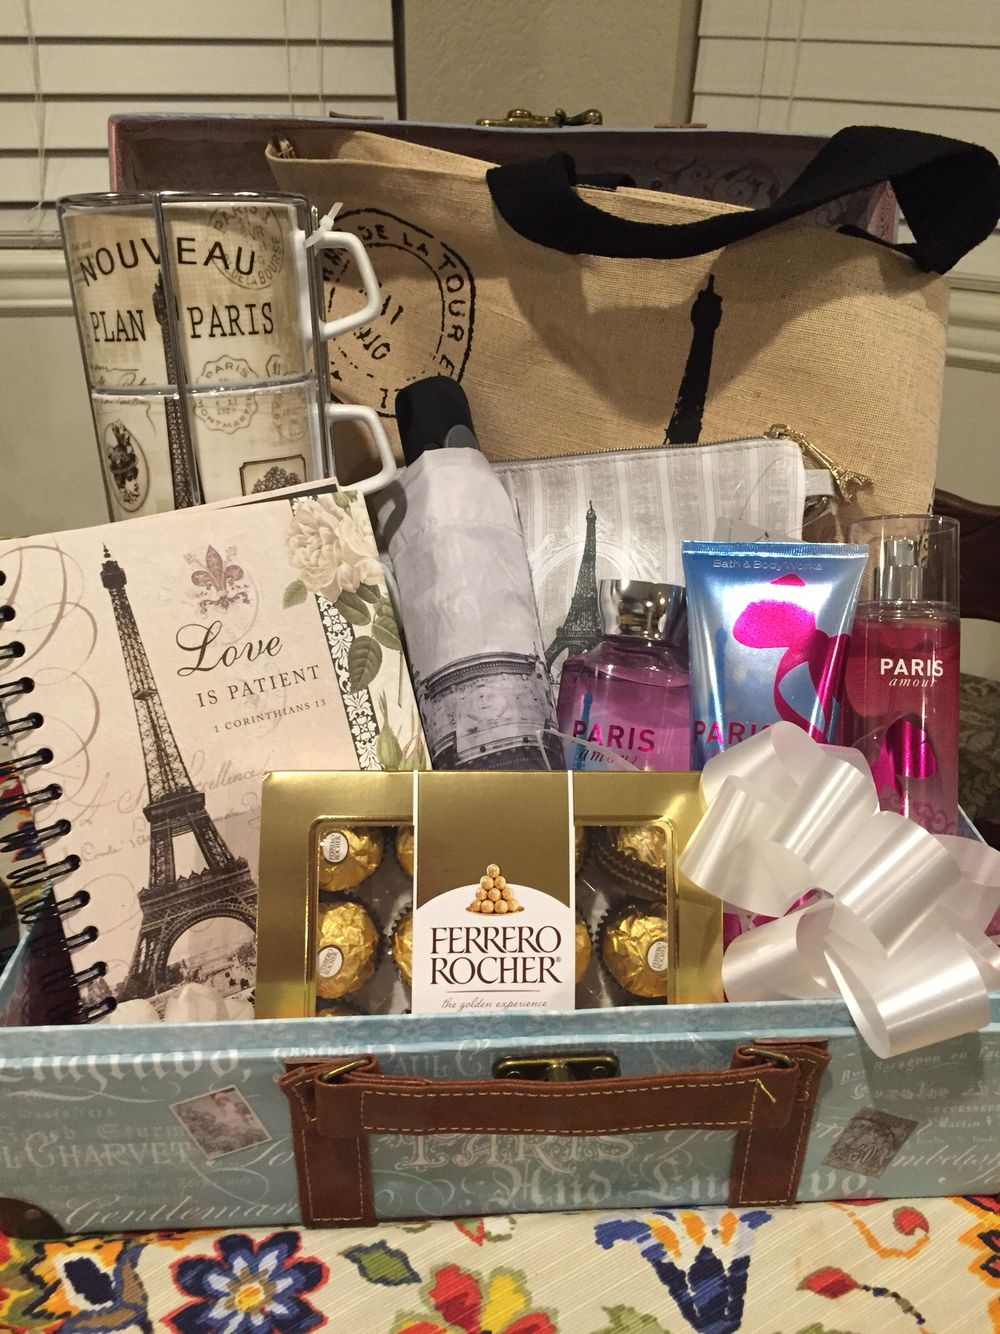 Paris Gift Basket Love This Idea Thinking About Putting One